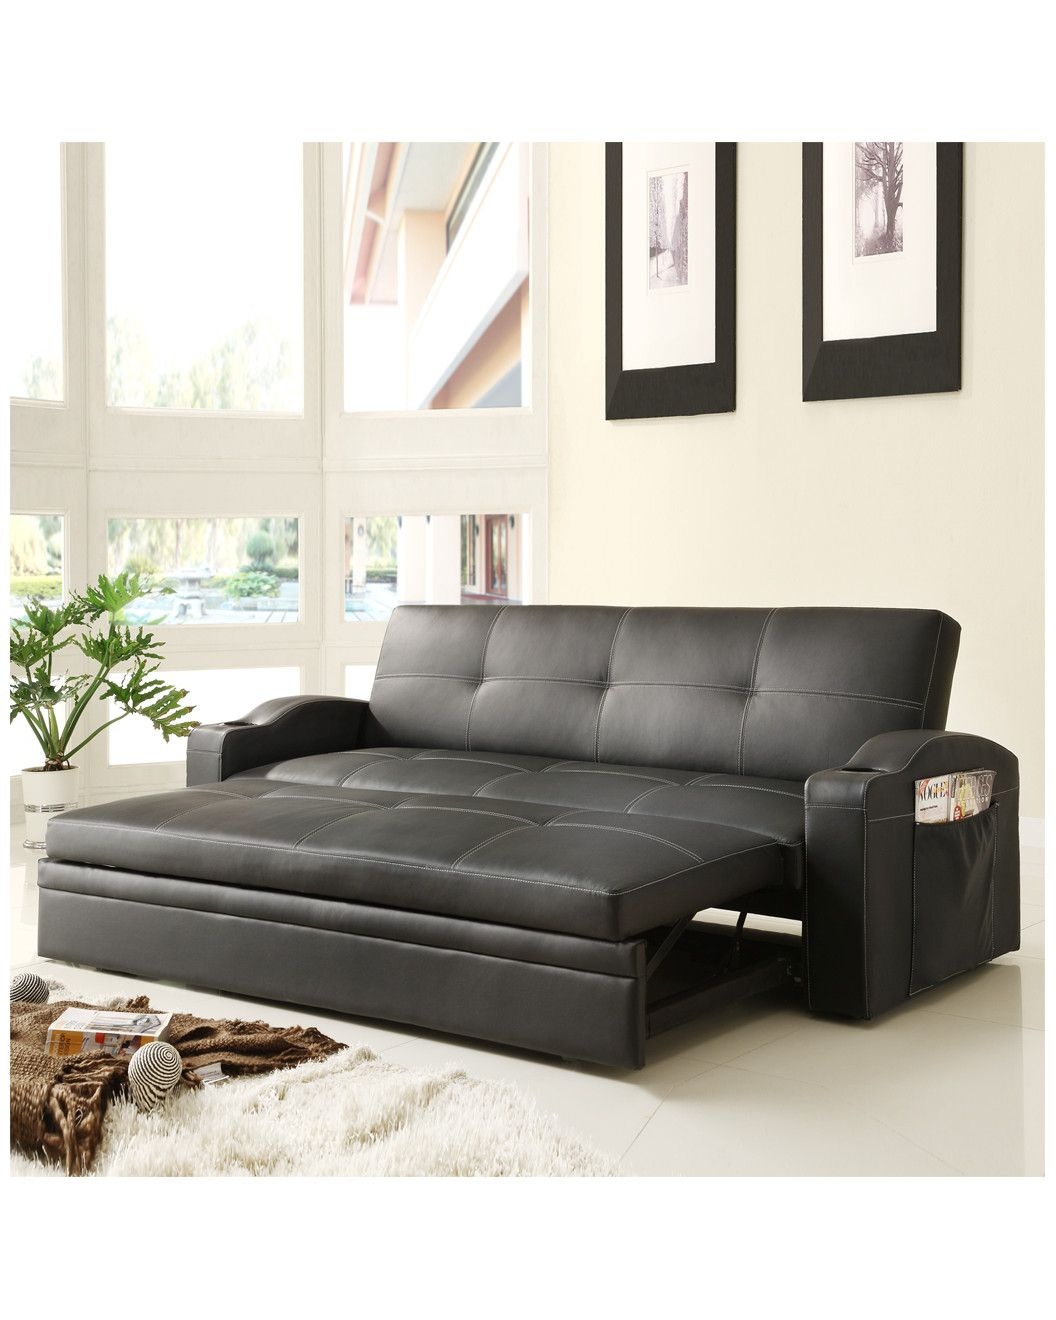 Spotted This Recliner Sofa With Pullout Trundle On Rue La La Shop